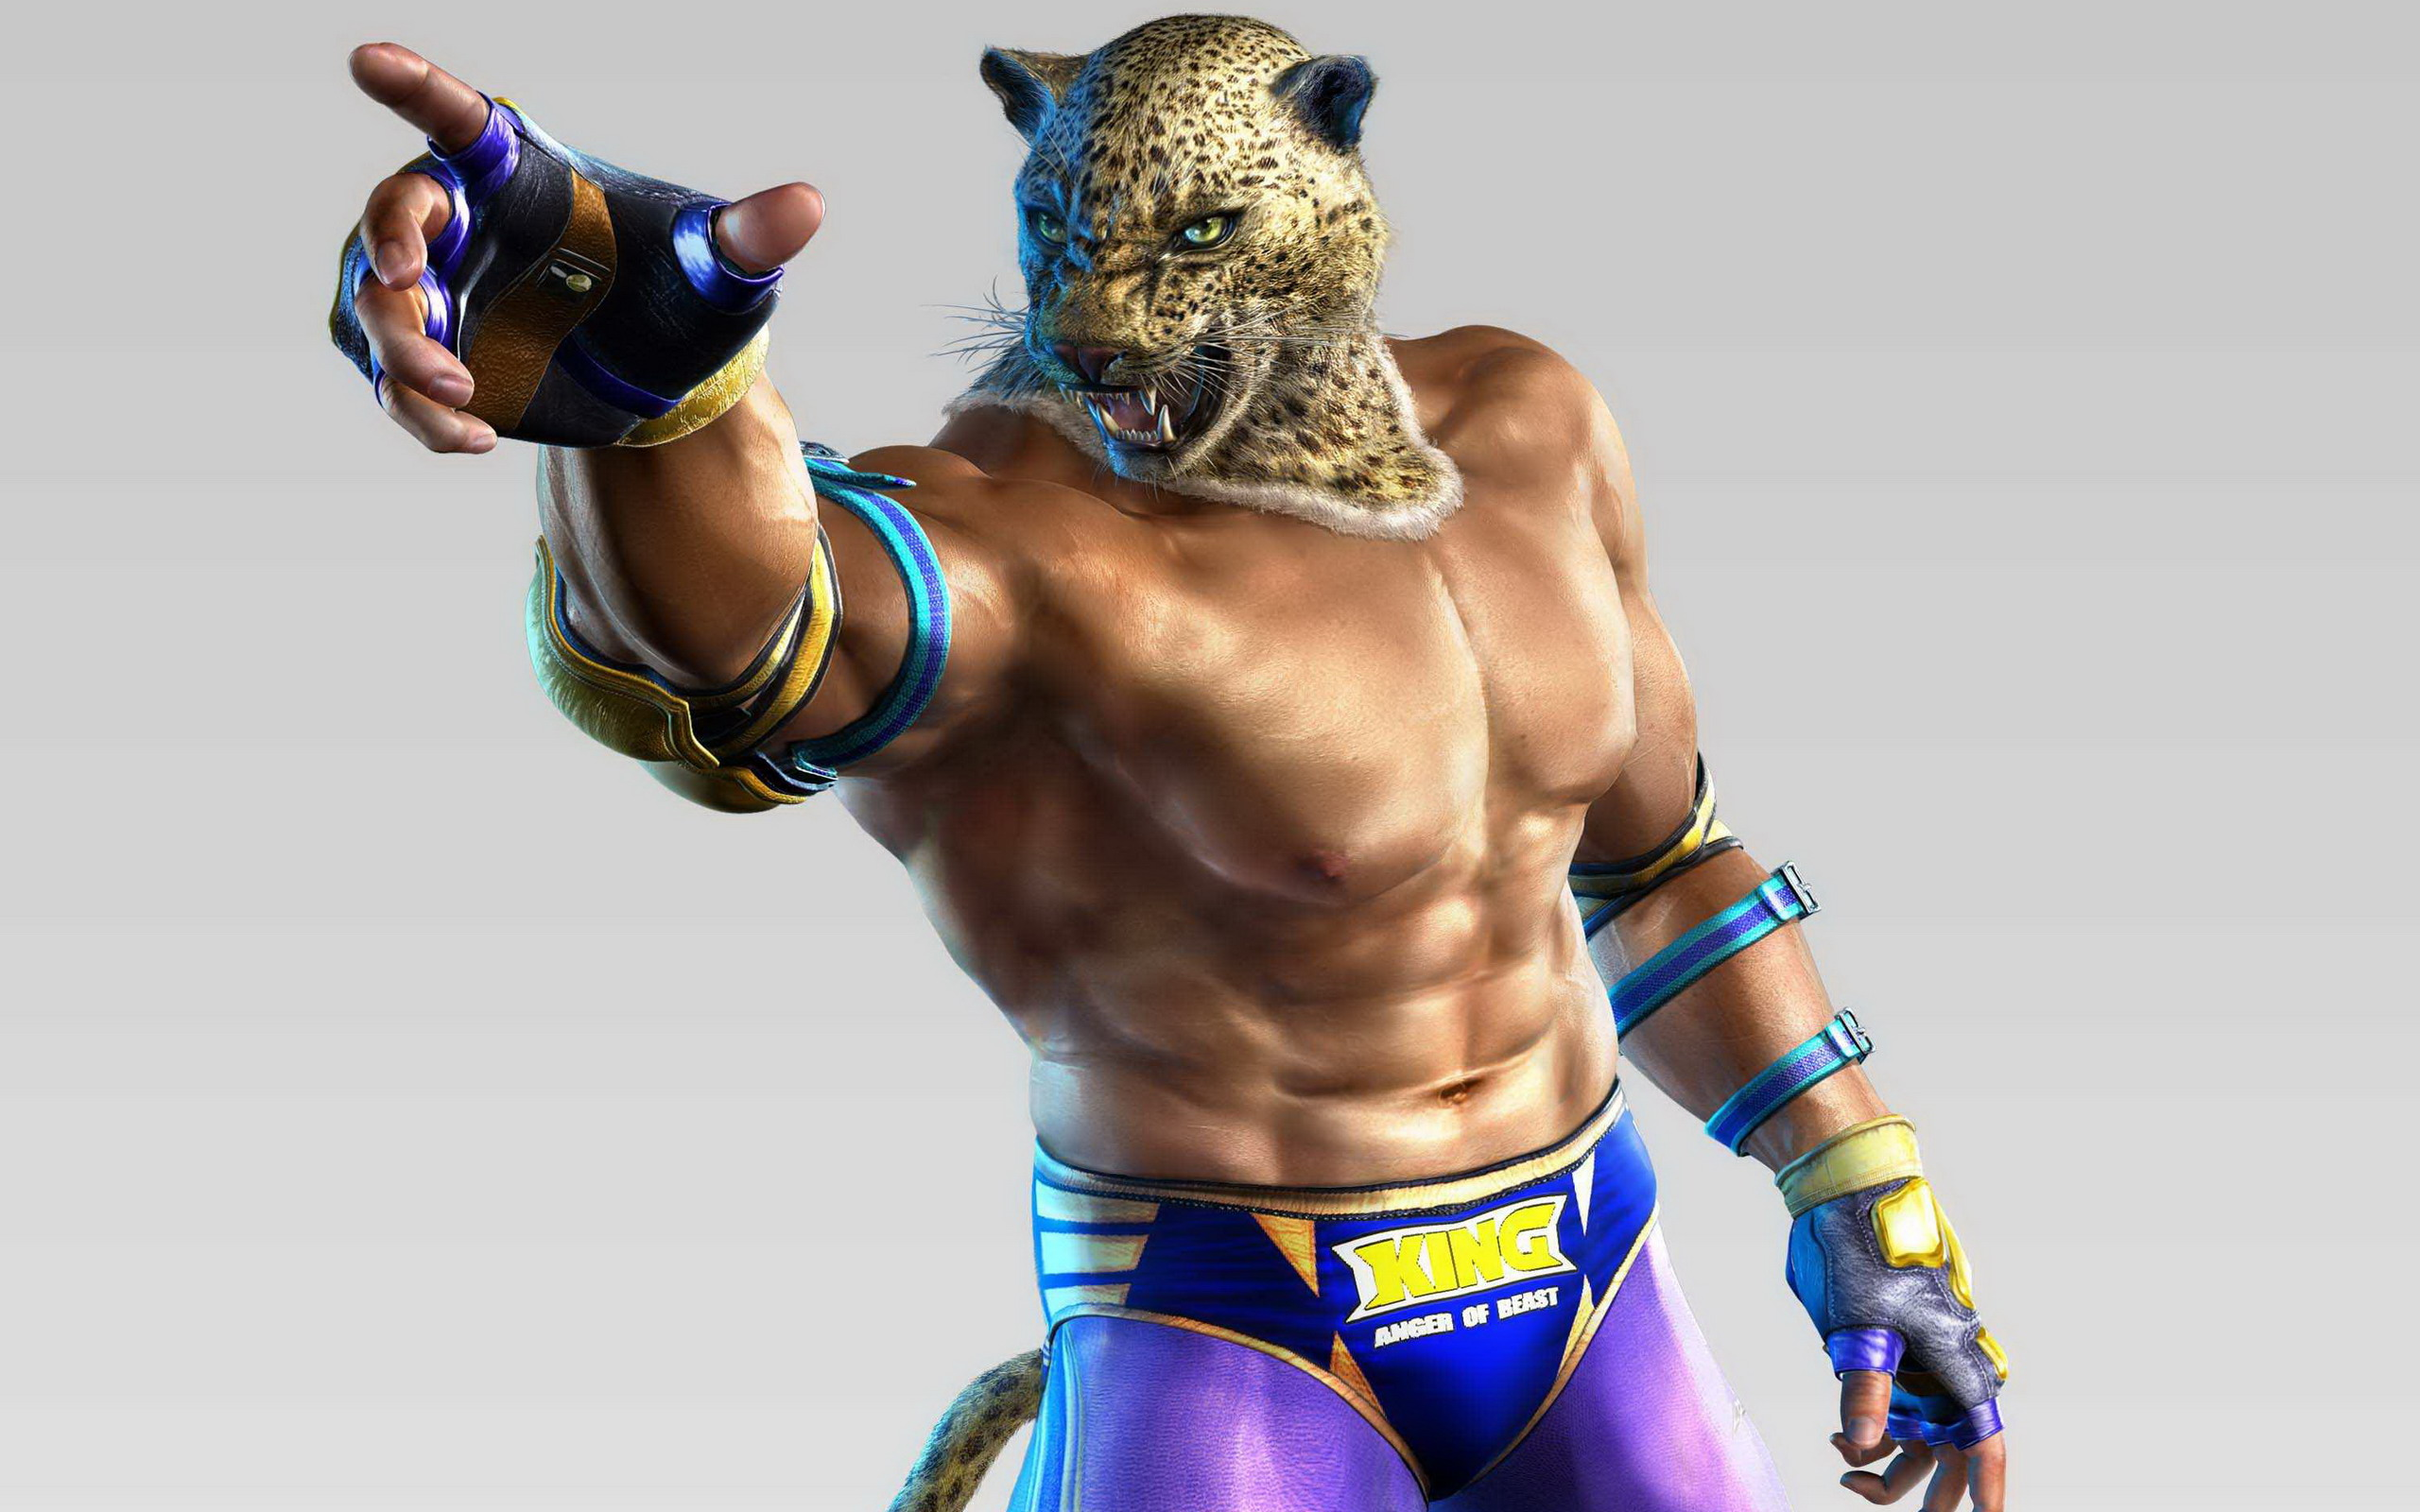 King Tekken Wallpapers HD Wallpapers 2560x1600